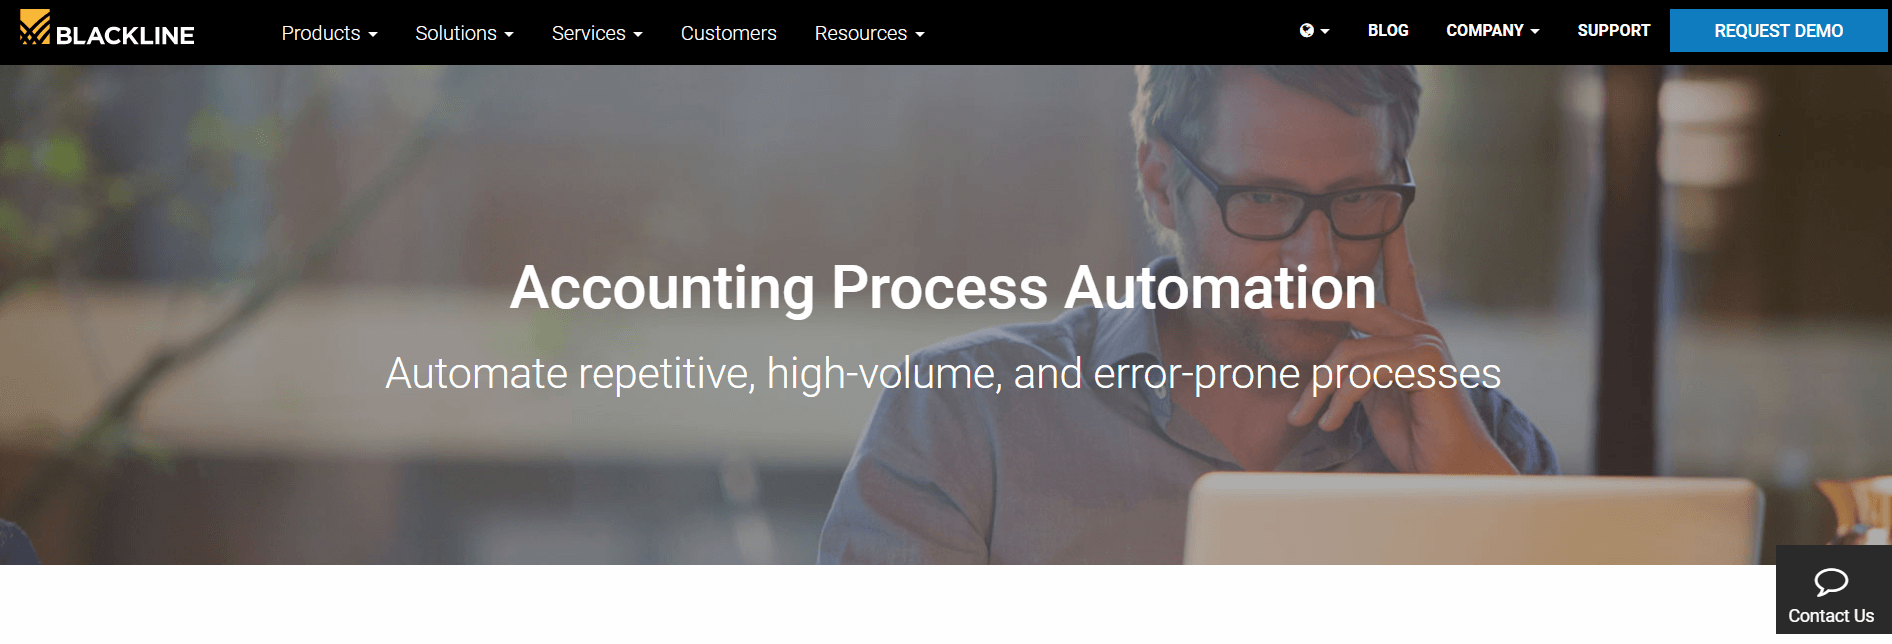 blackline accounting processes automation